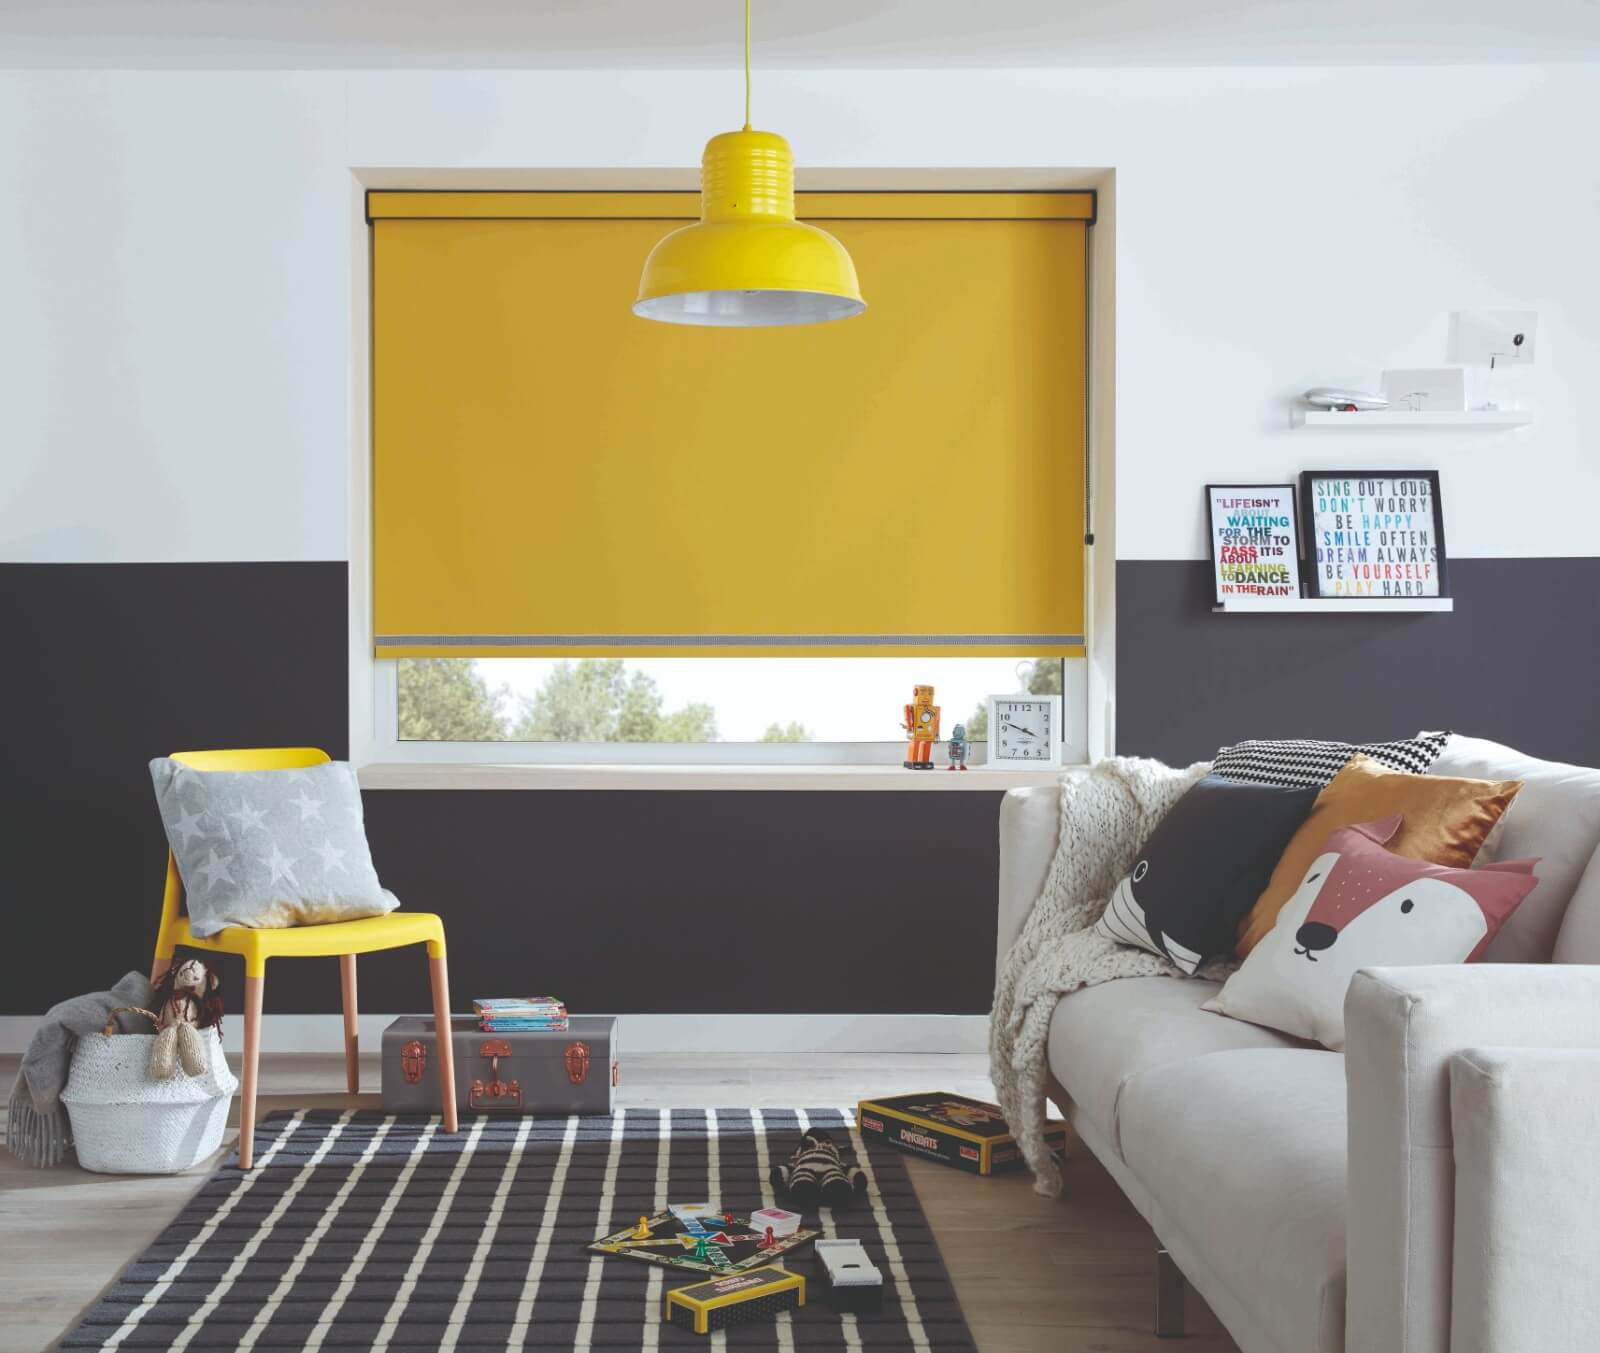 Blinds ambition - Blinds are an important part of window dressings, either as secondary dressing to curtains or a main dressing themselves.